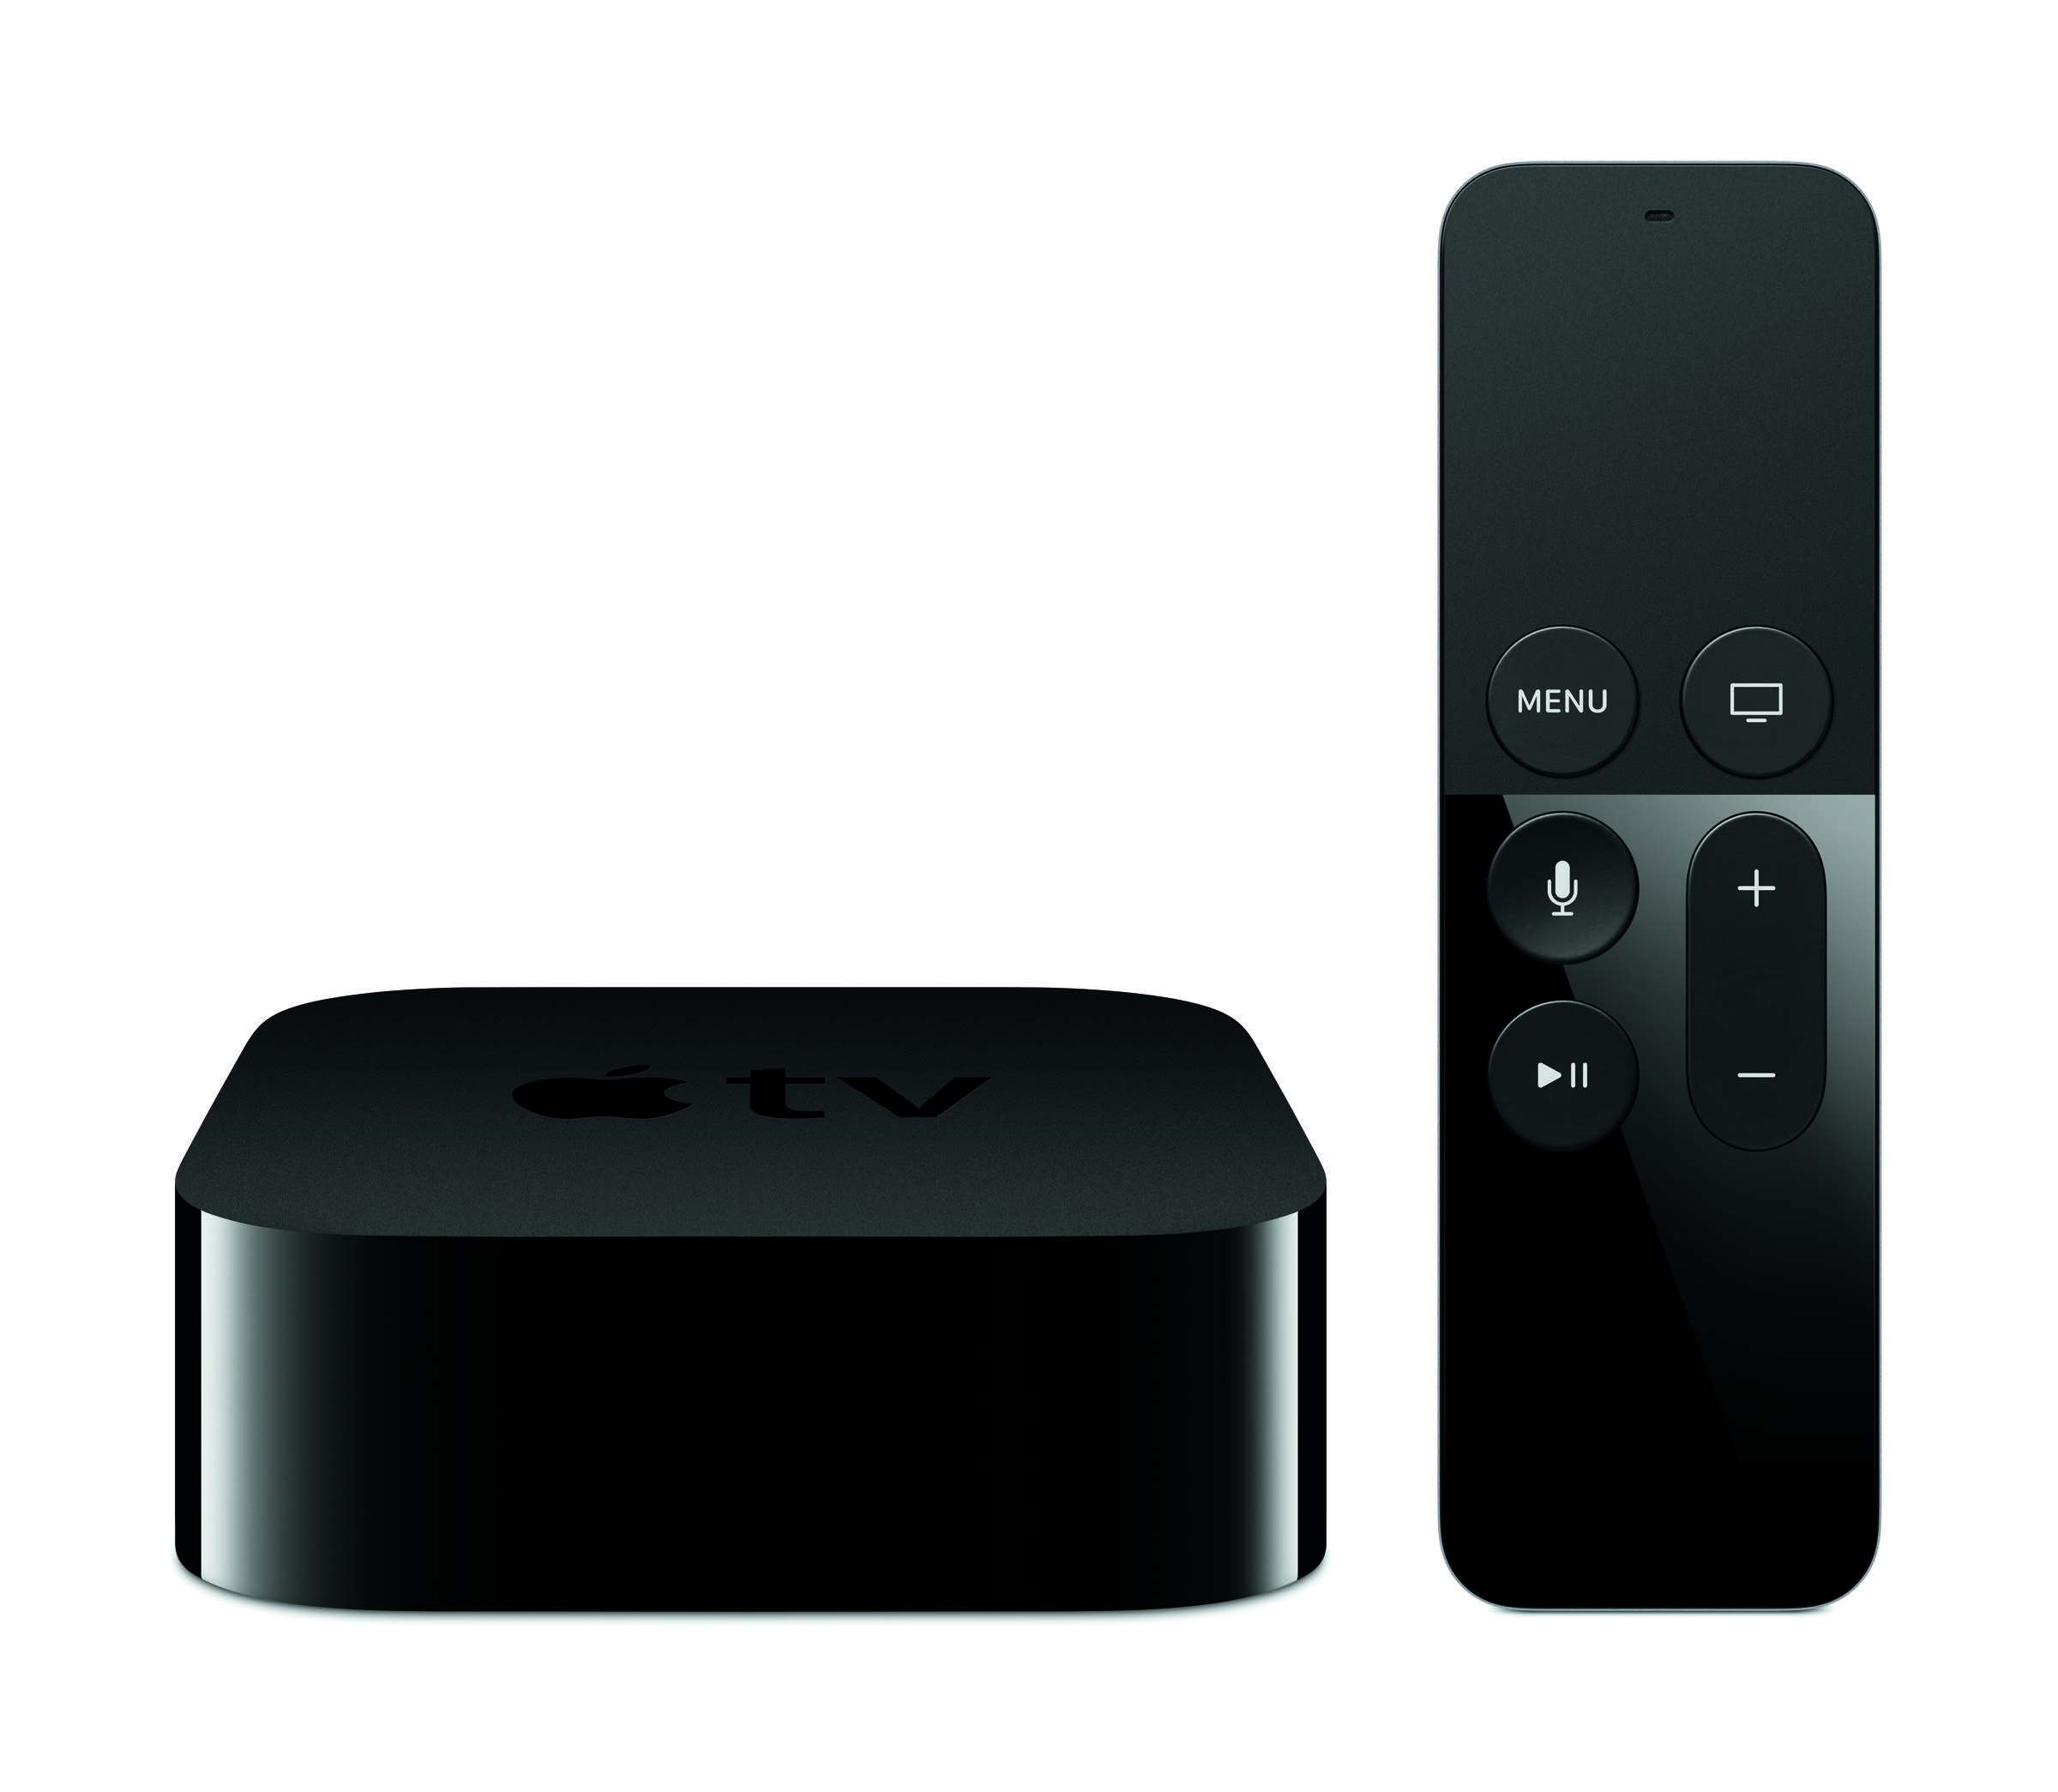 Treat your new Apple TV remote with kid gloves, it breaks